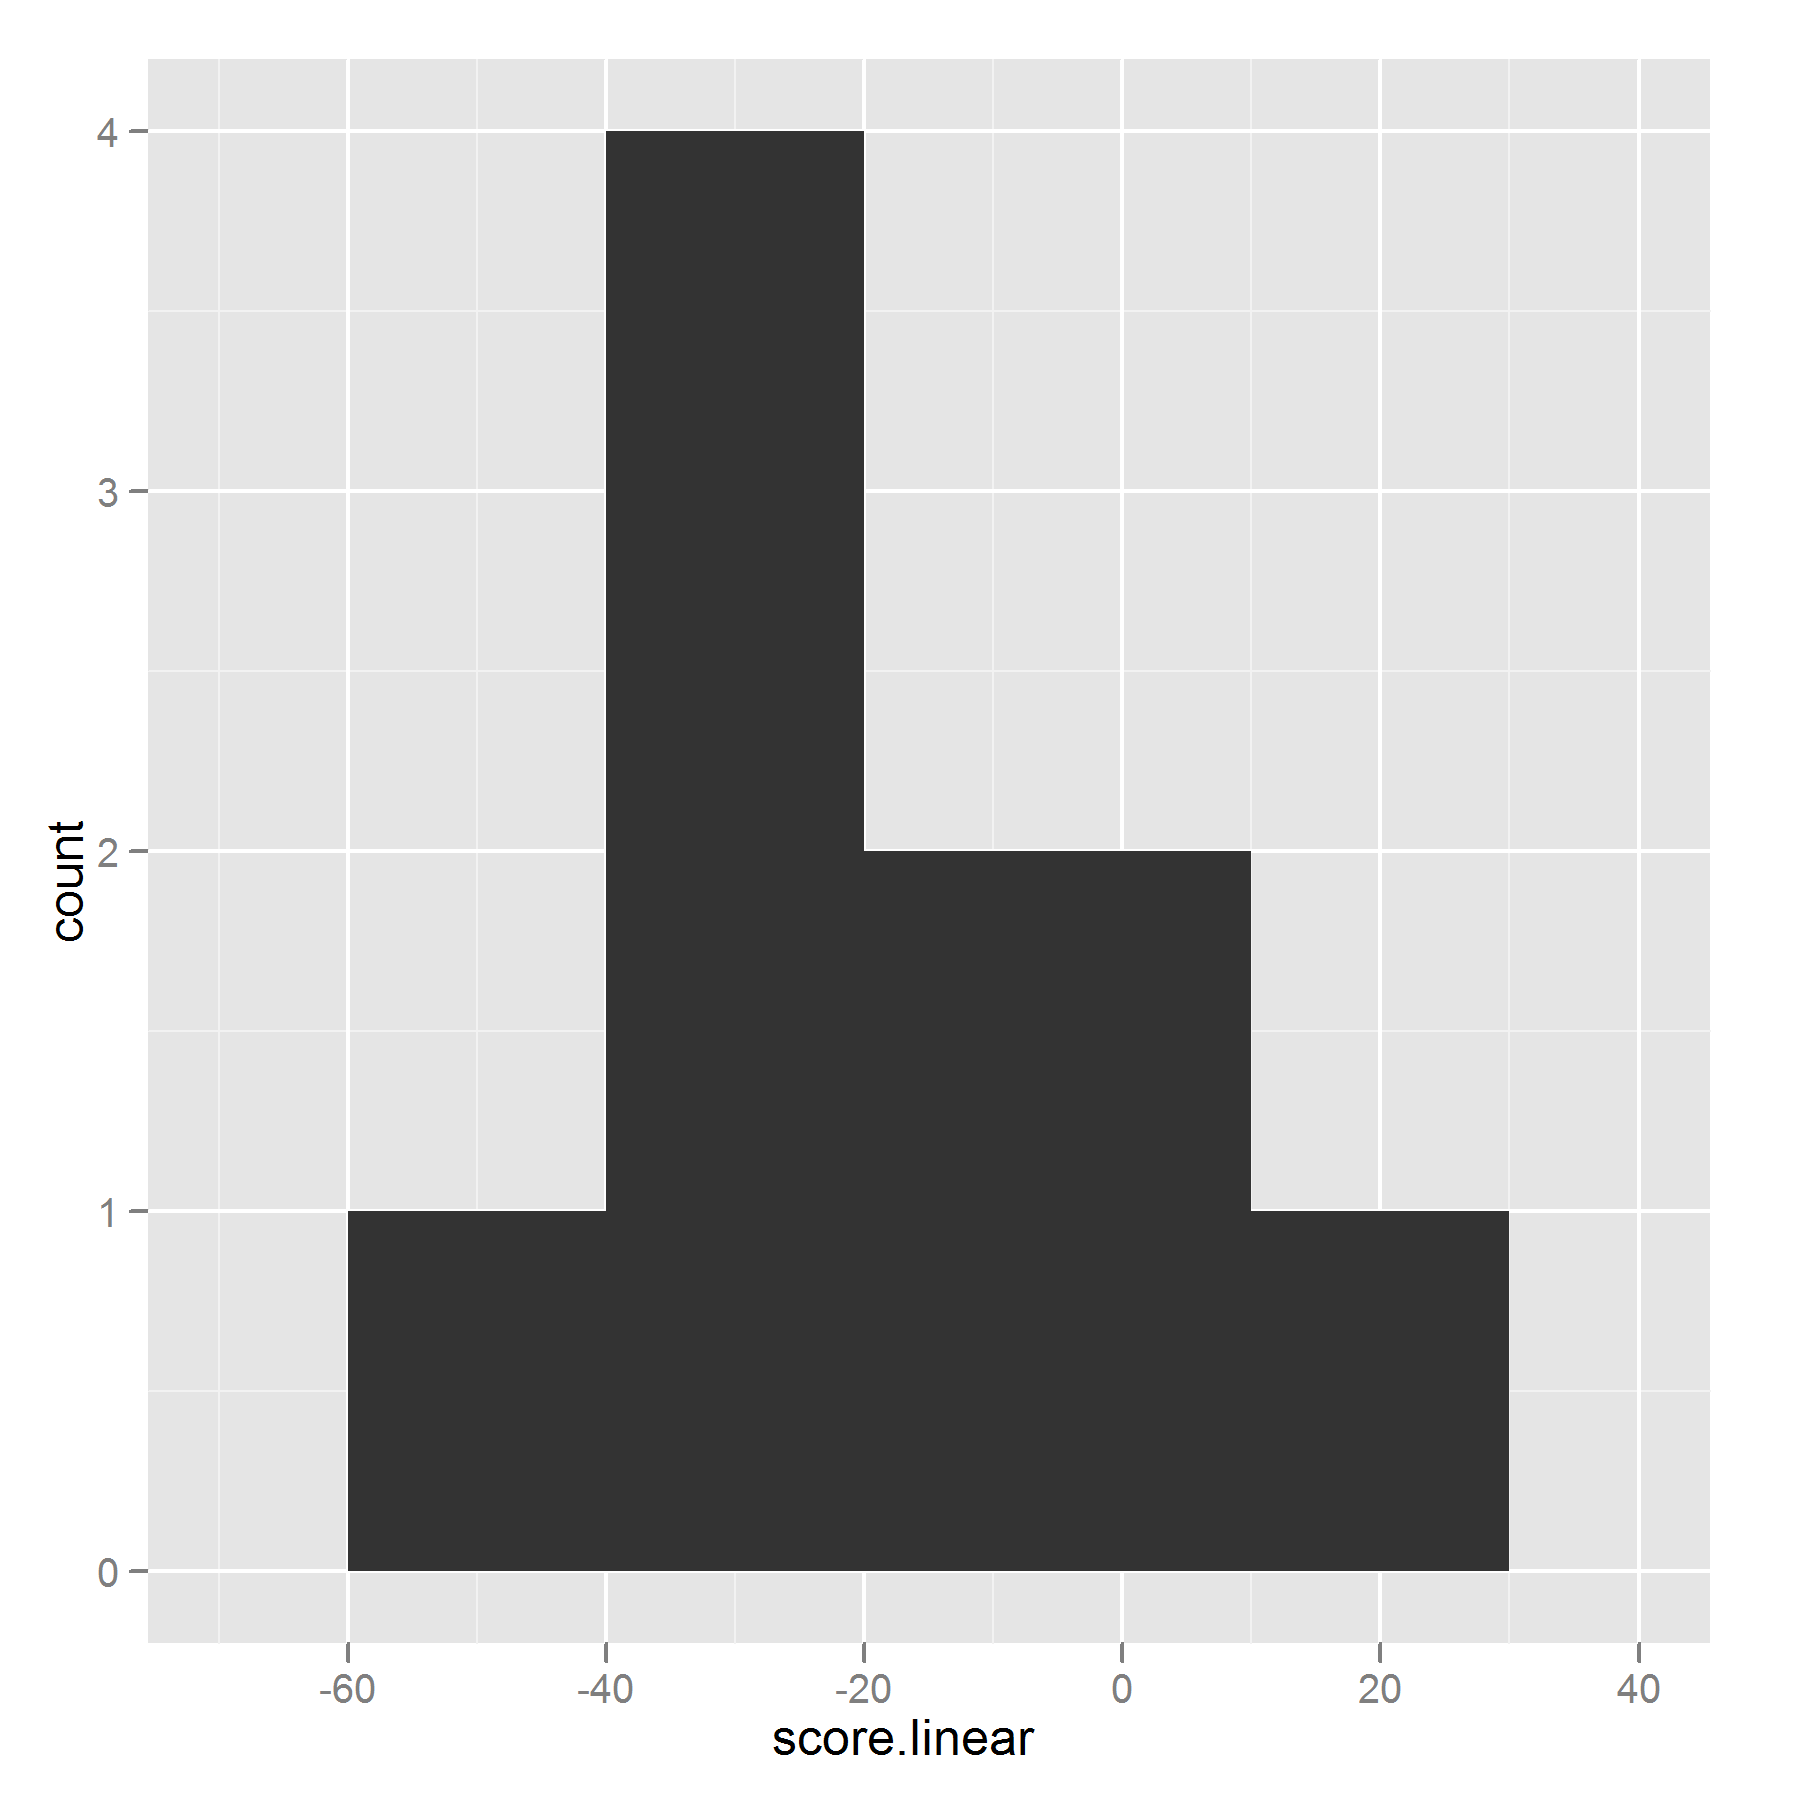 histogram of linear scores